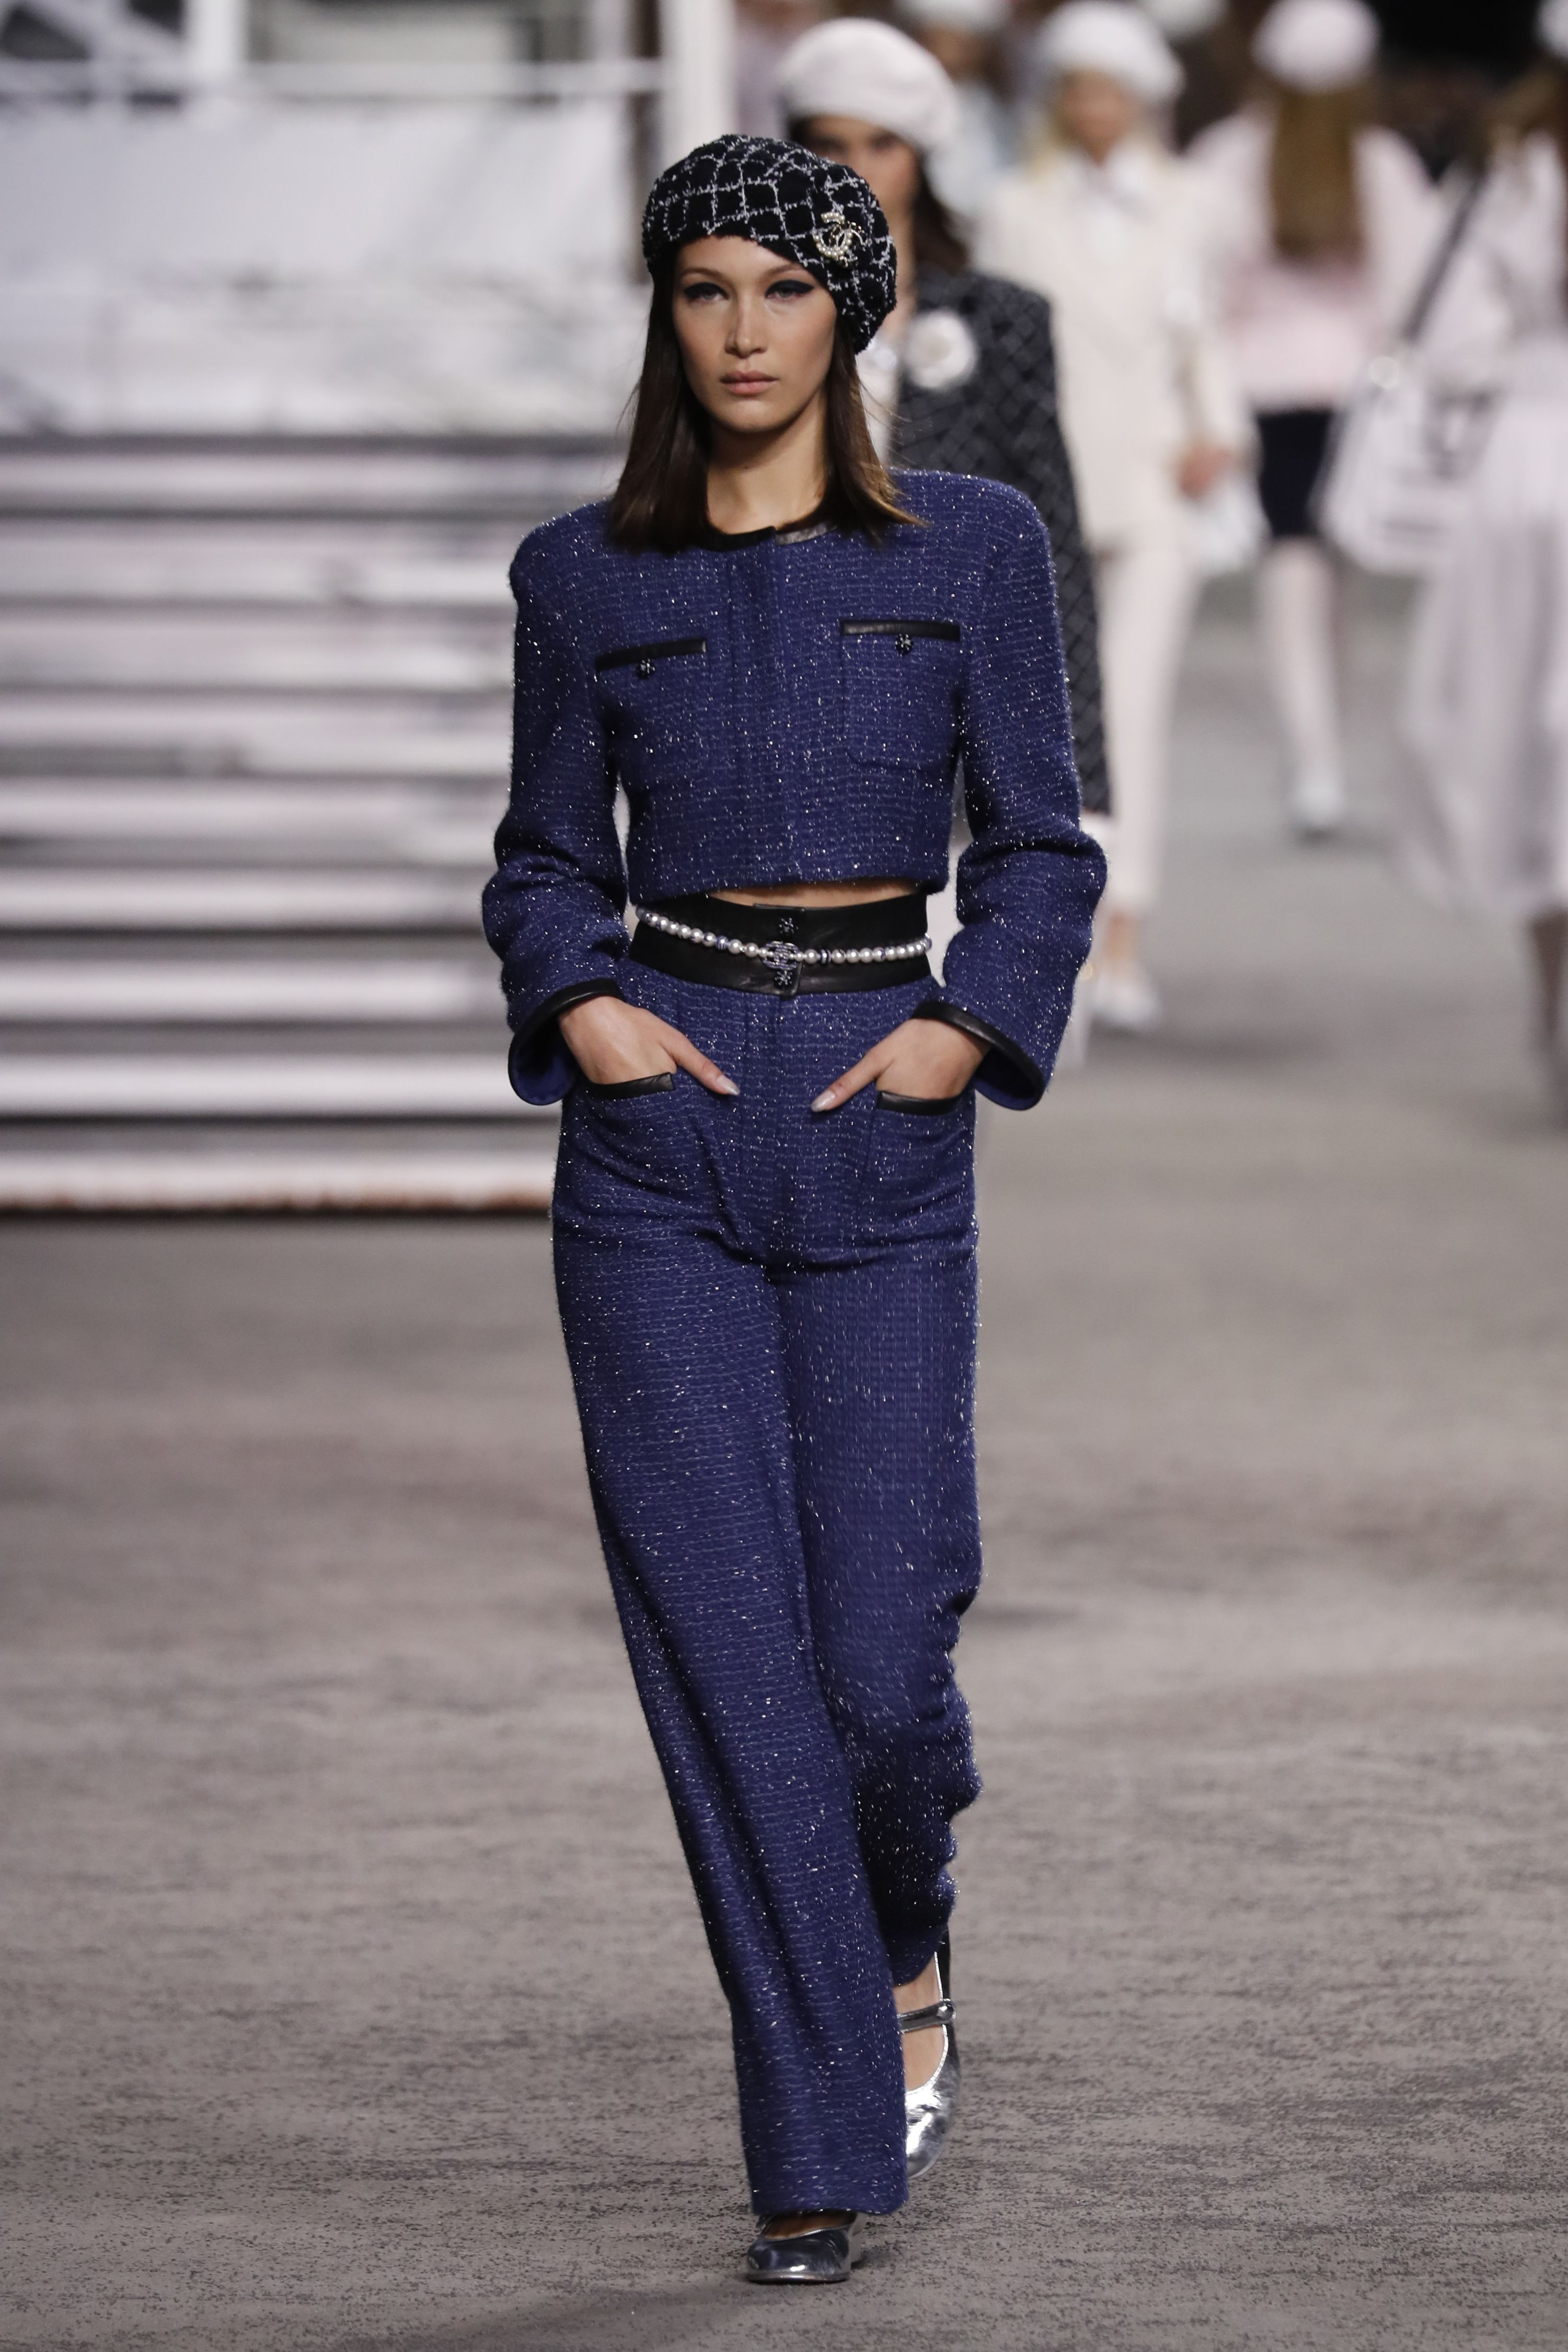 Bella Hadid, Chanel, desfile, paris, cruise, barco